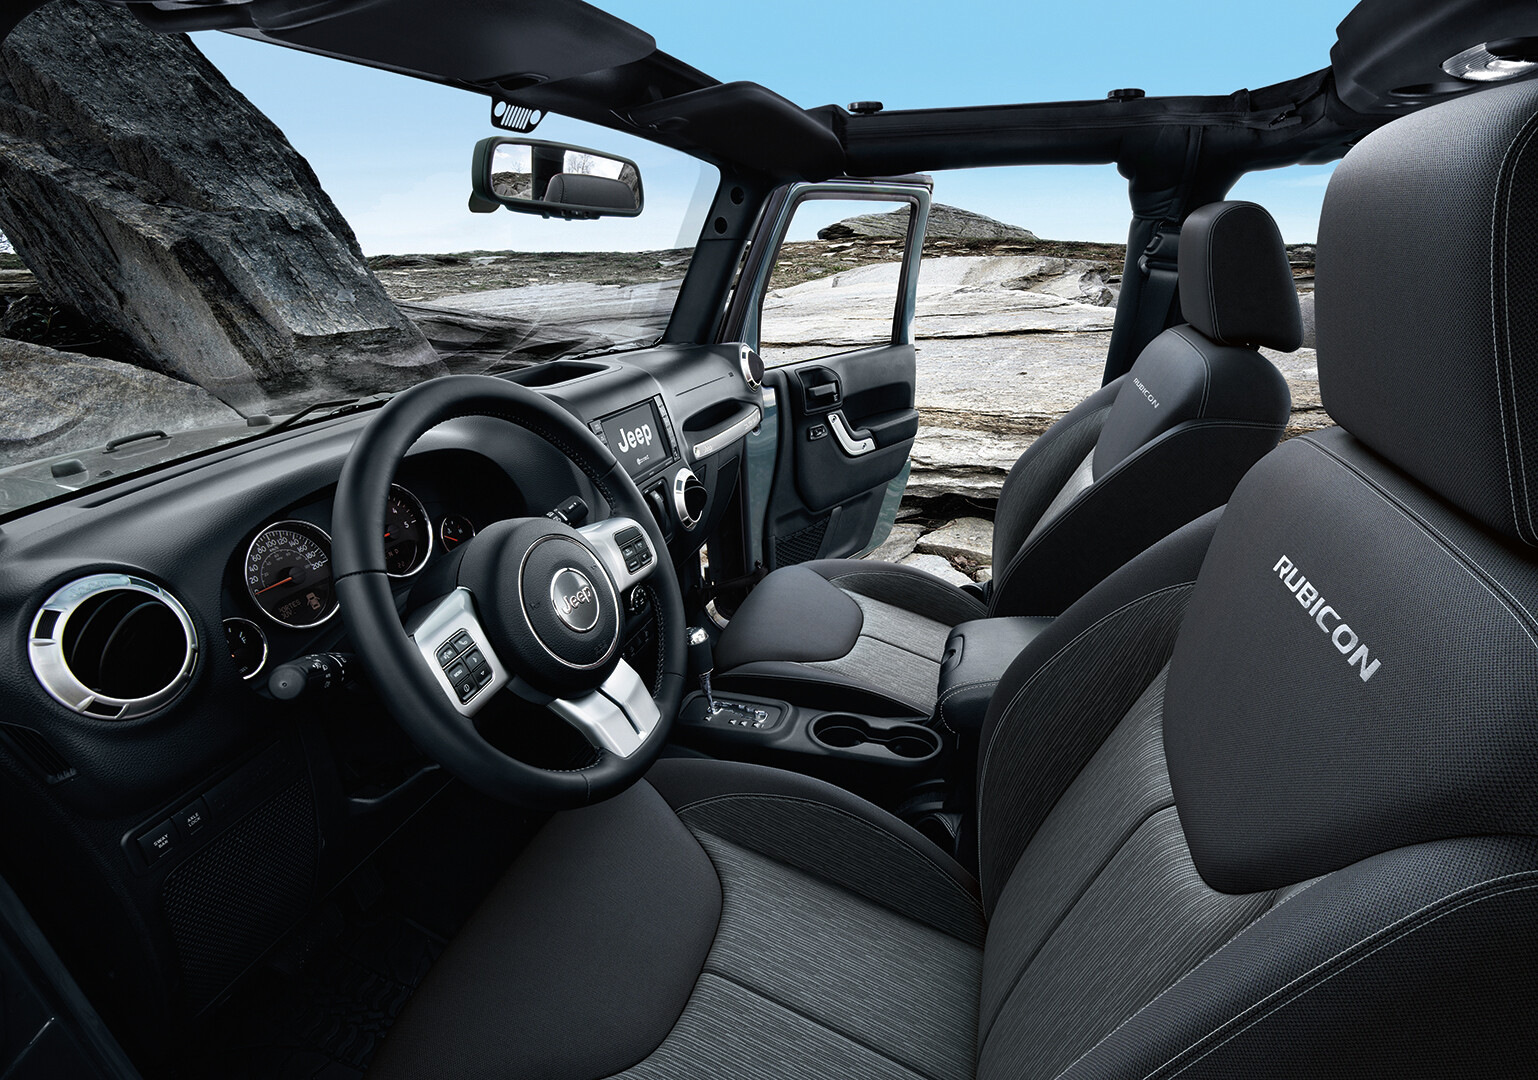 Jeep Wrangler: CG Seats